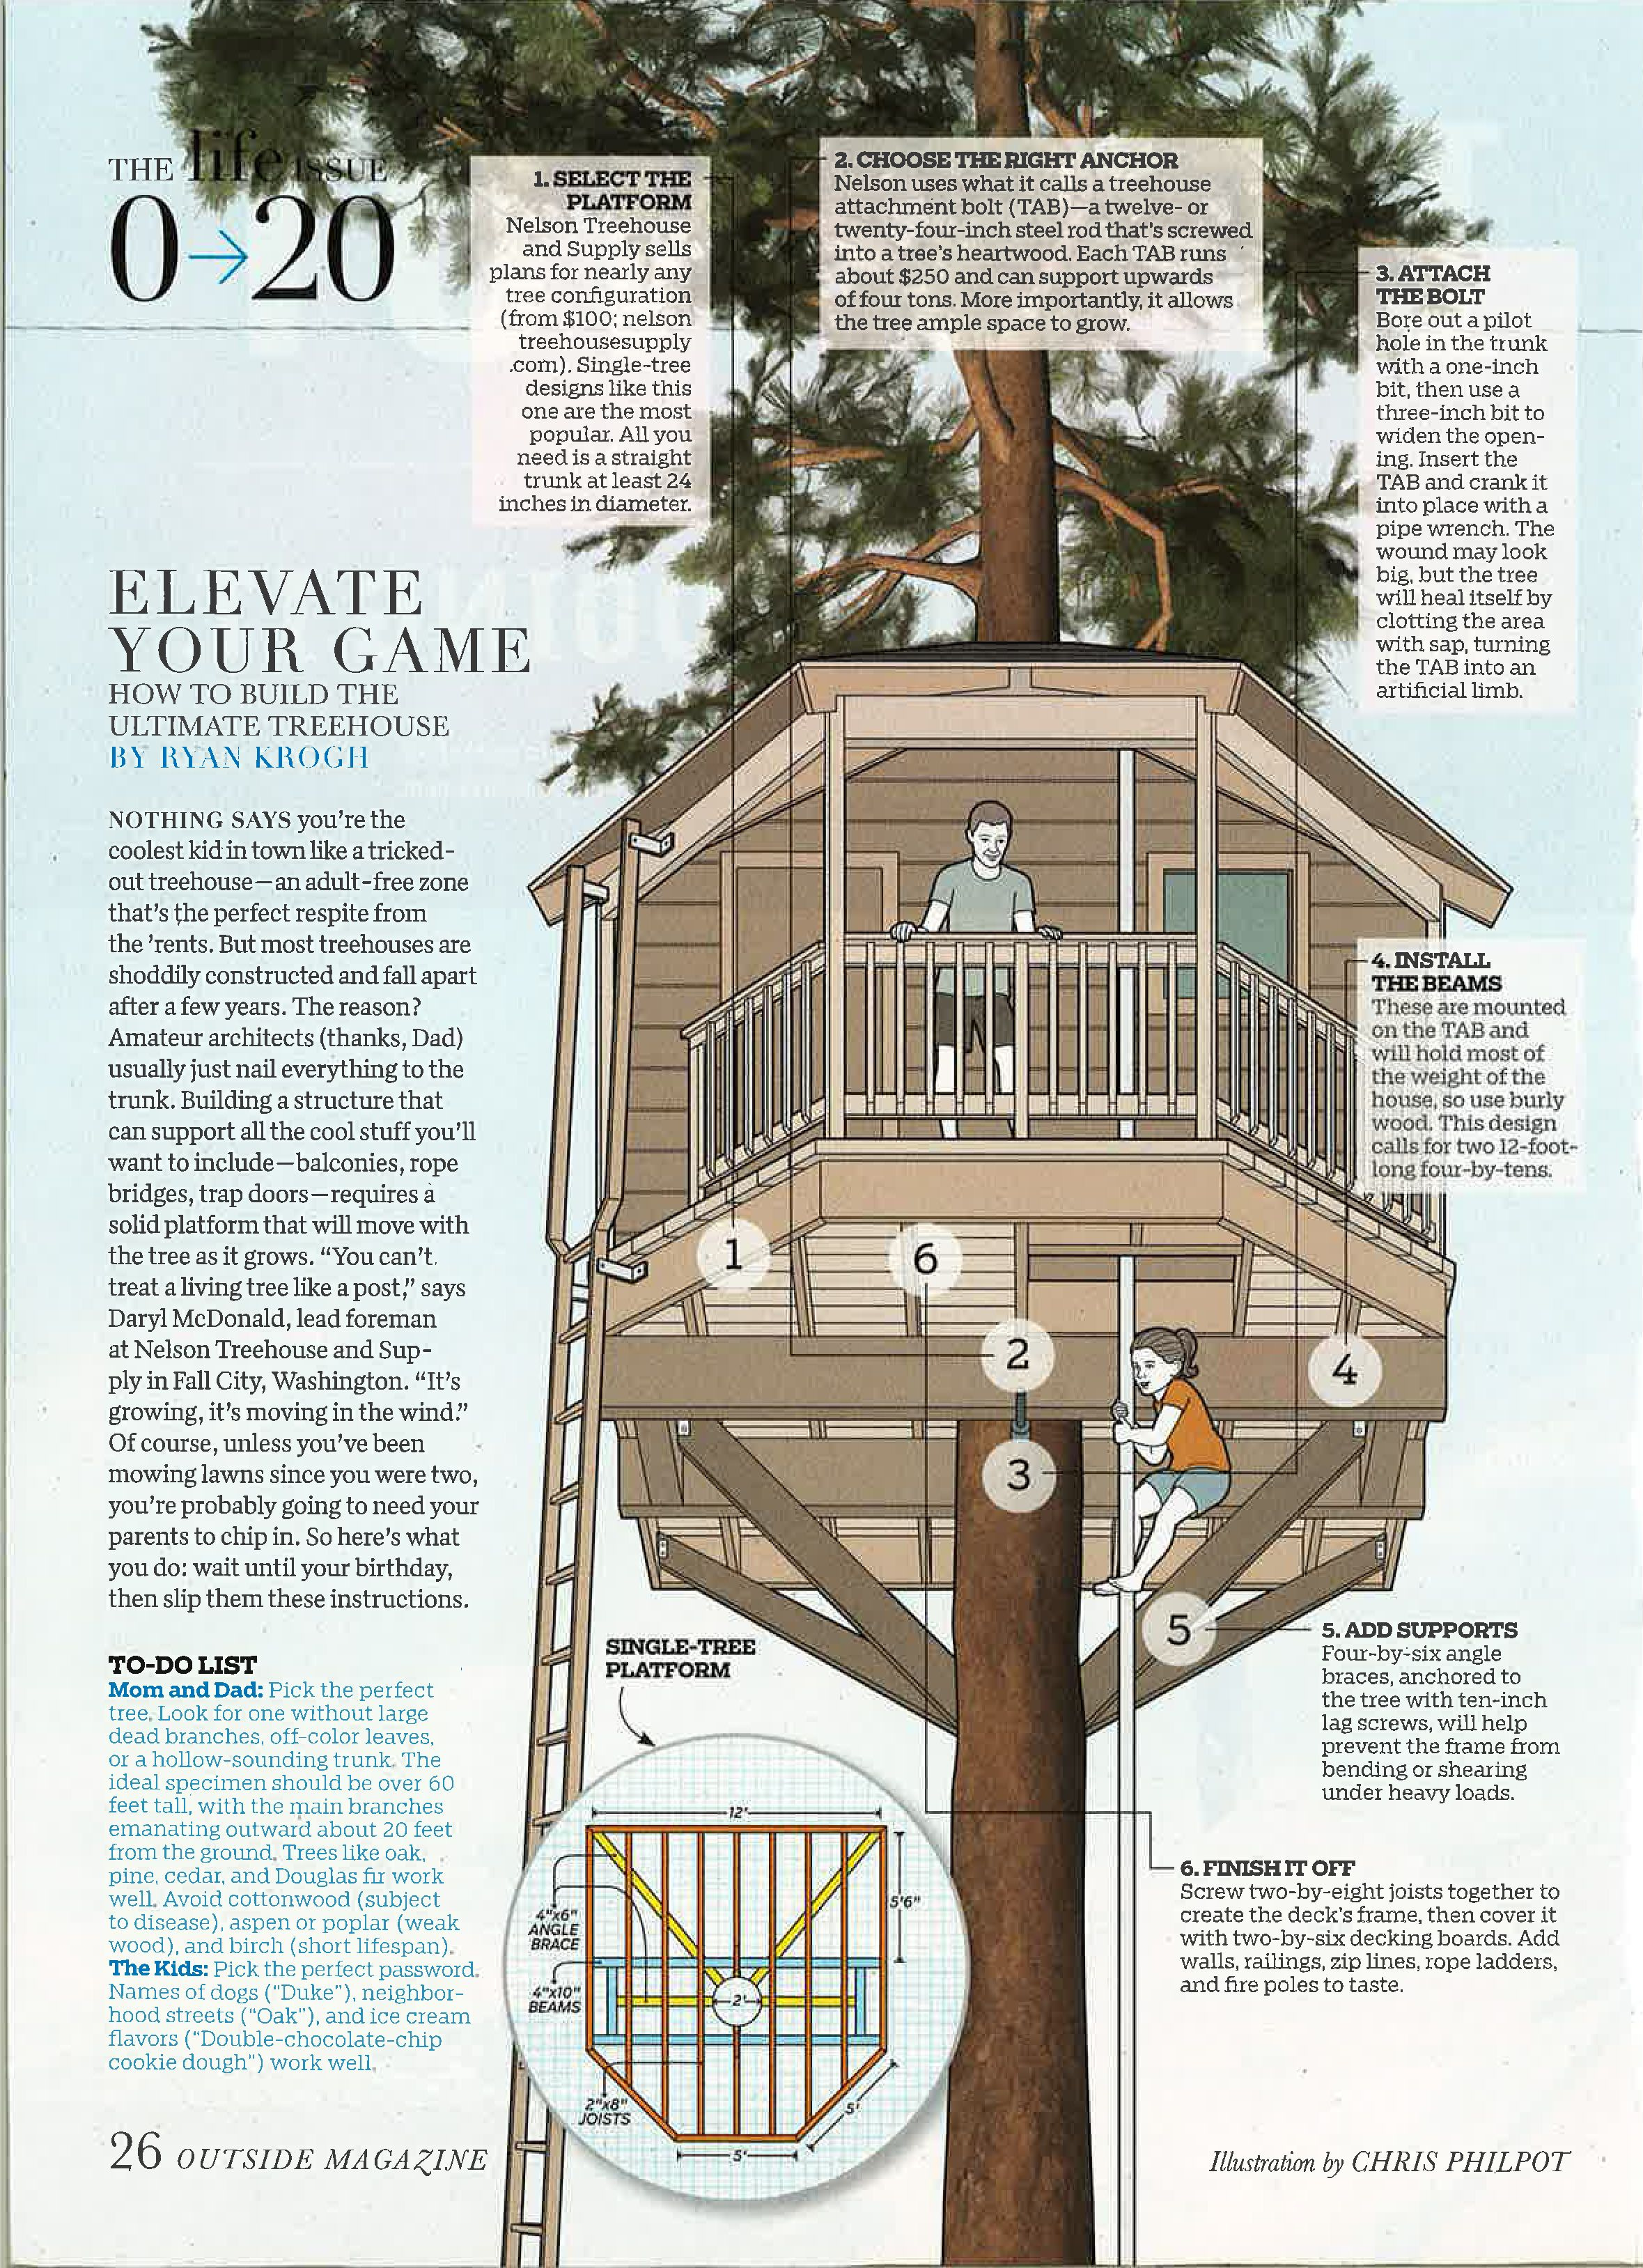 Best Tree House Plans New 21 Unbeliavably Amazing Treehouse Ideas that Will Inspire